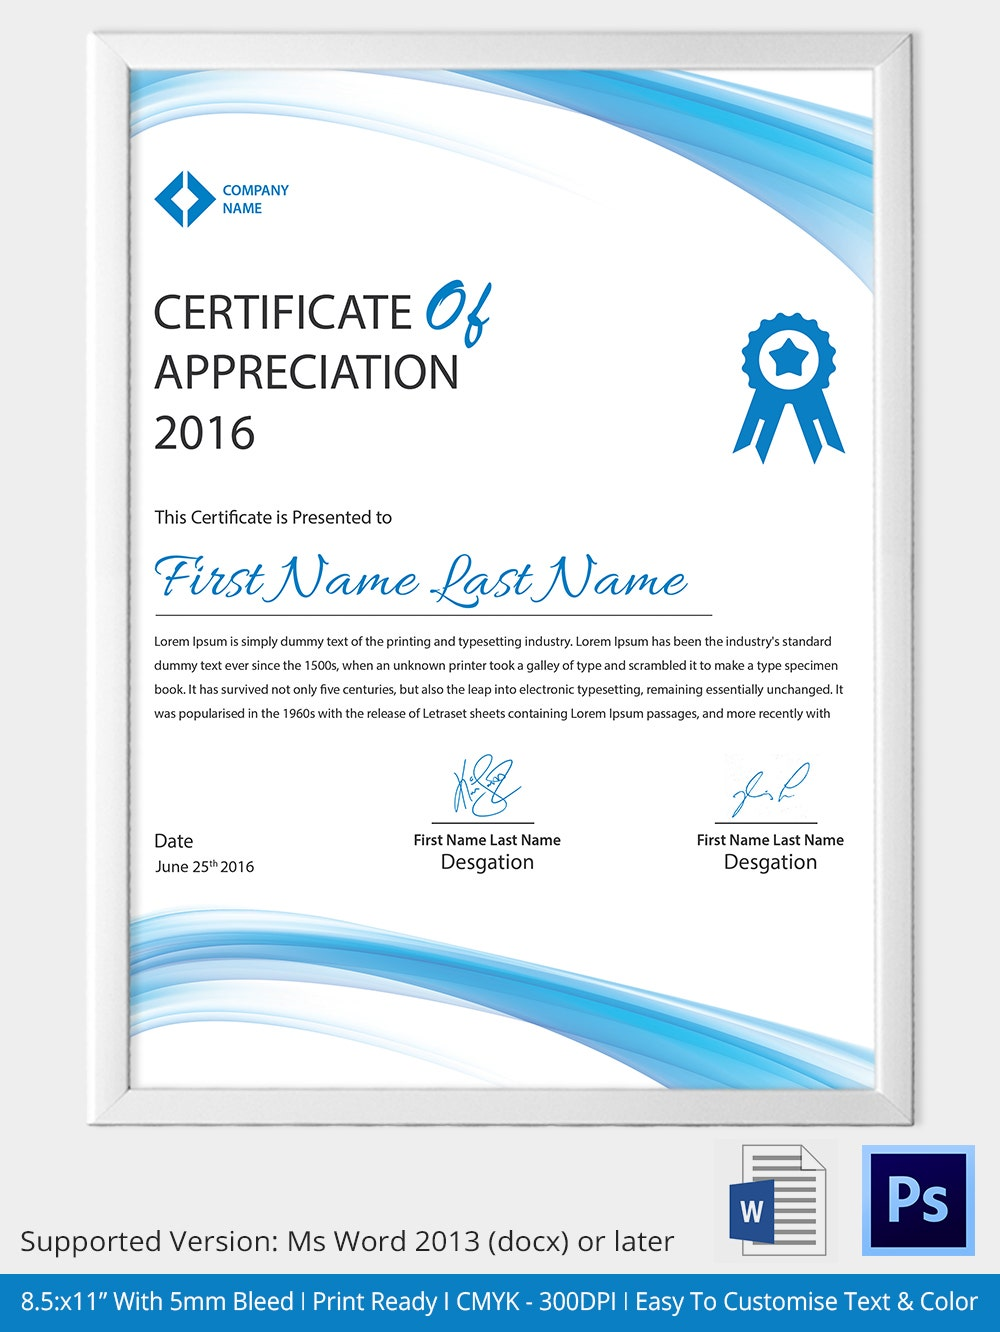 Word certificate template 31 free download samples for Certificate of appreciation template free